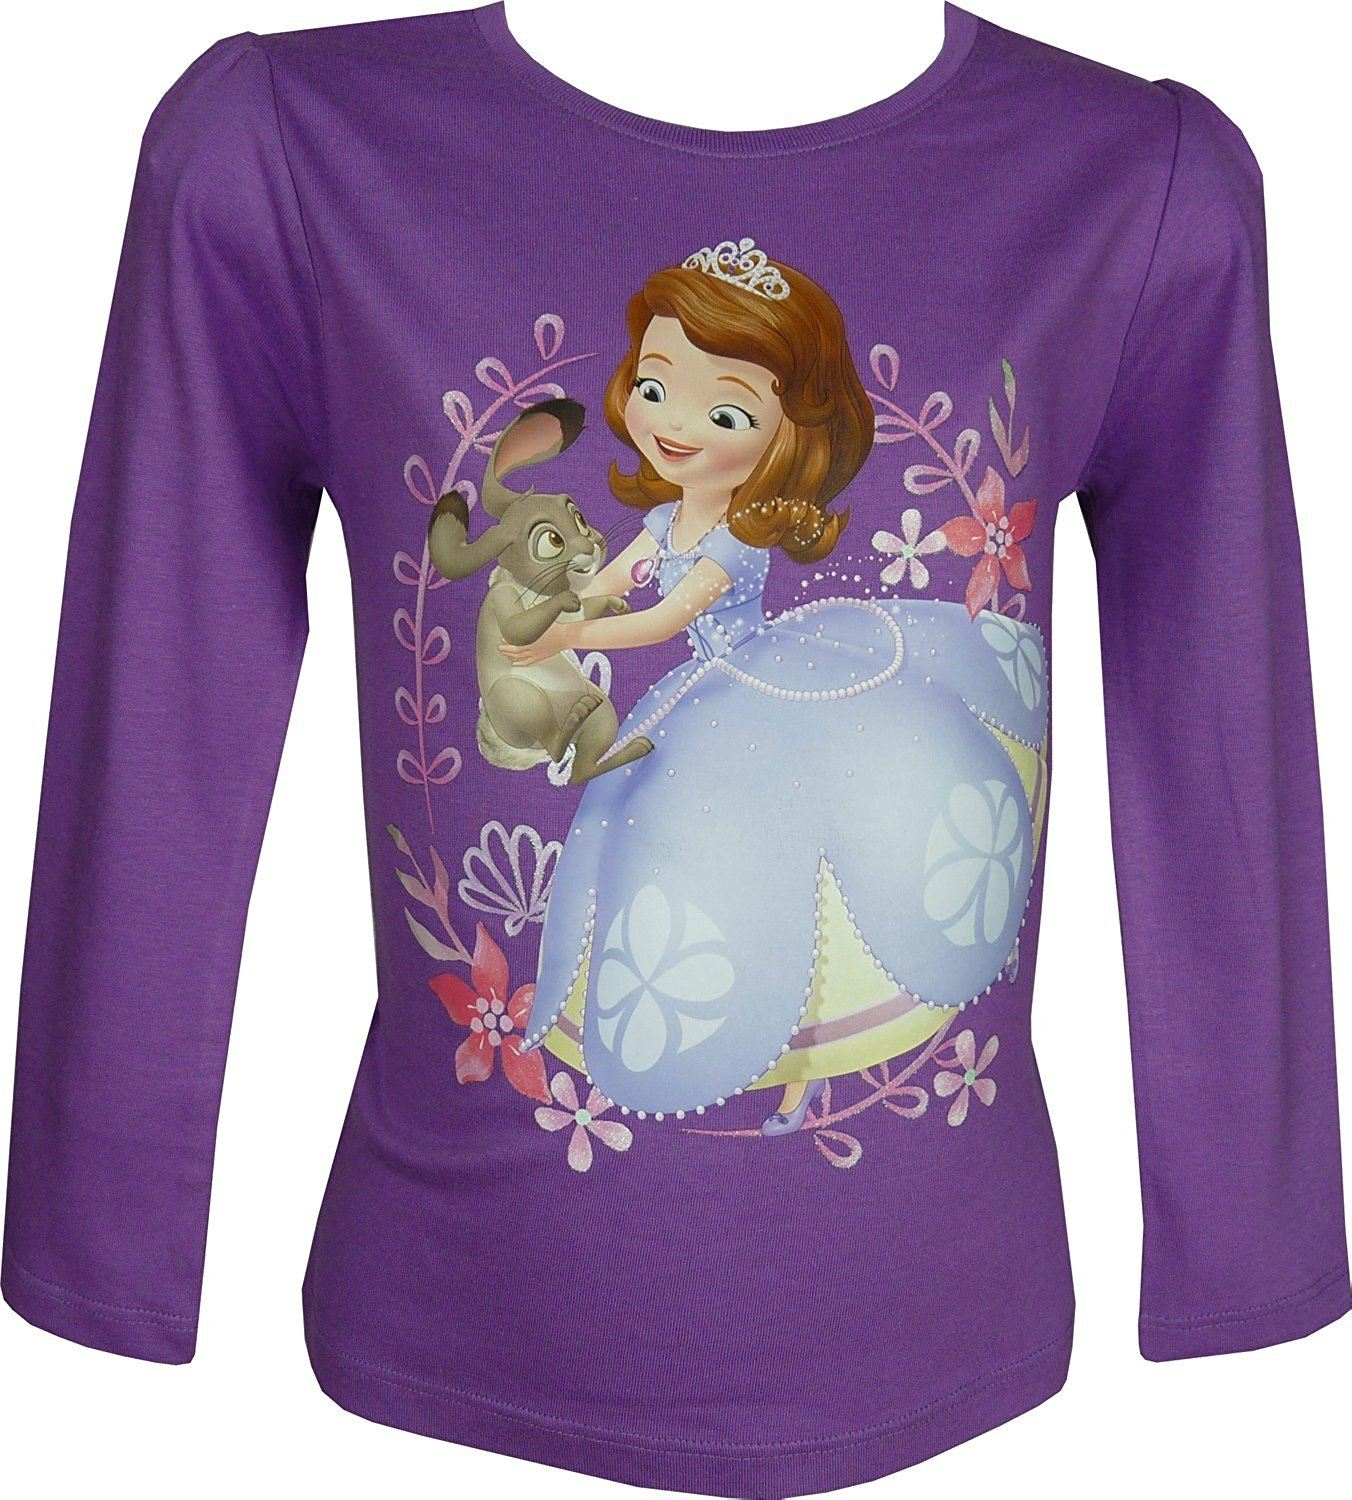 Fille-Disney-Princess-Sofia-Frozen-Minnie-Mouse-Top-a-manches-longues